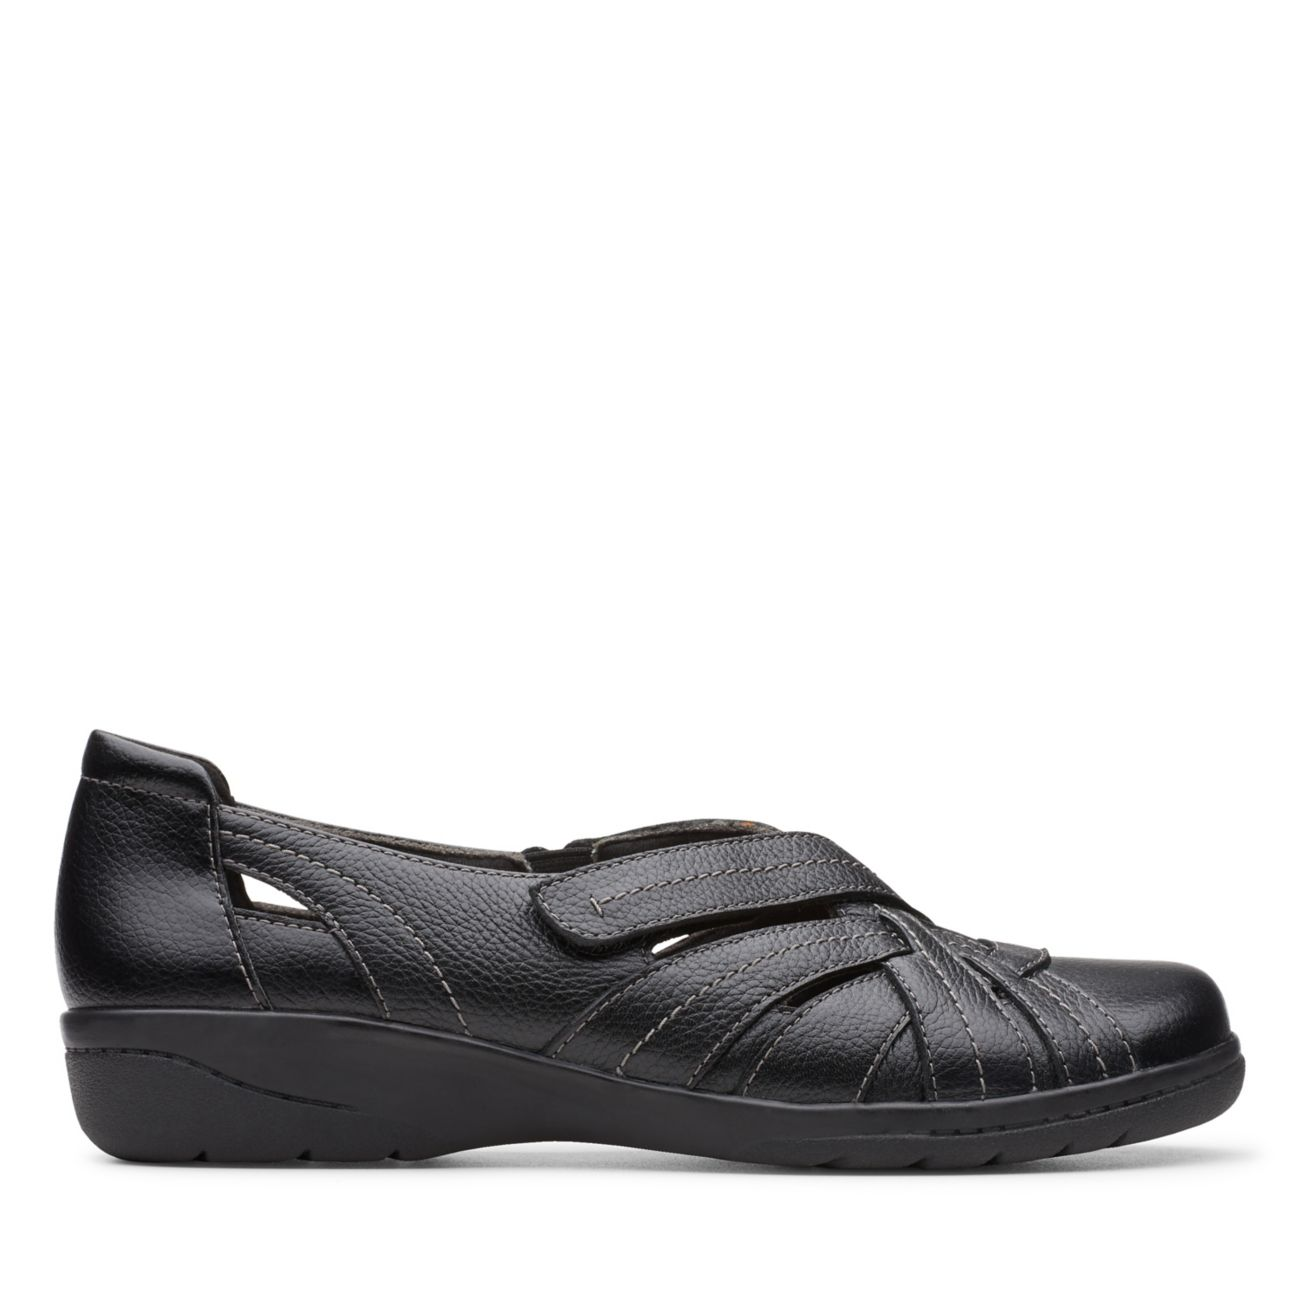 Cheyn Tulip Black Leather - Clarks® Shoes Official Site | Clarks